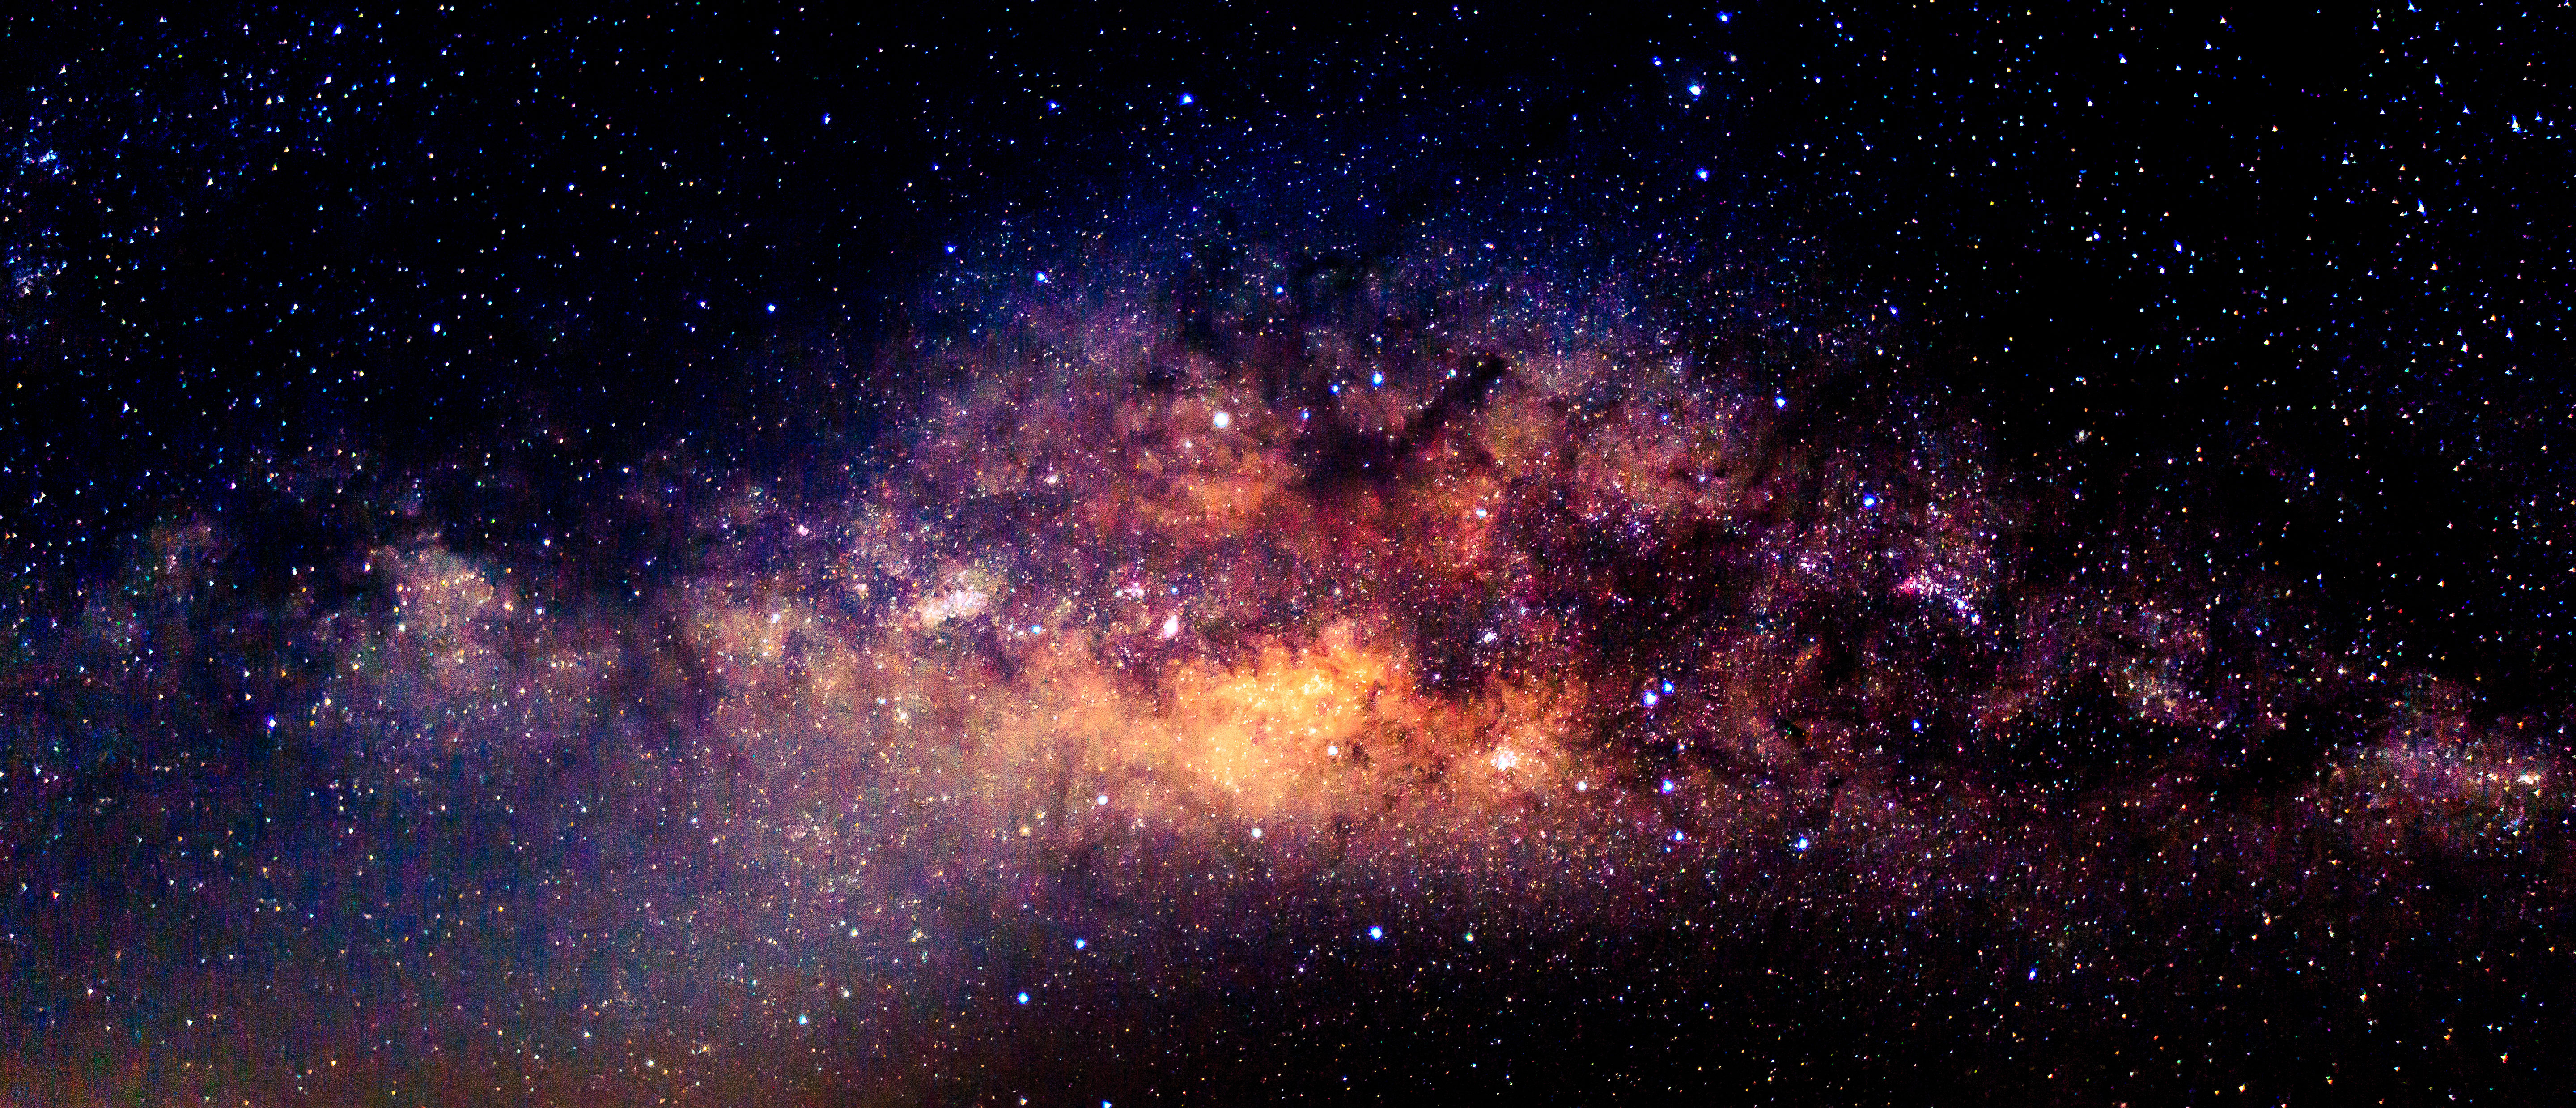 The Milky Way Galaxy. Shutterstock